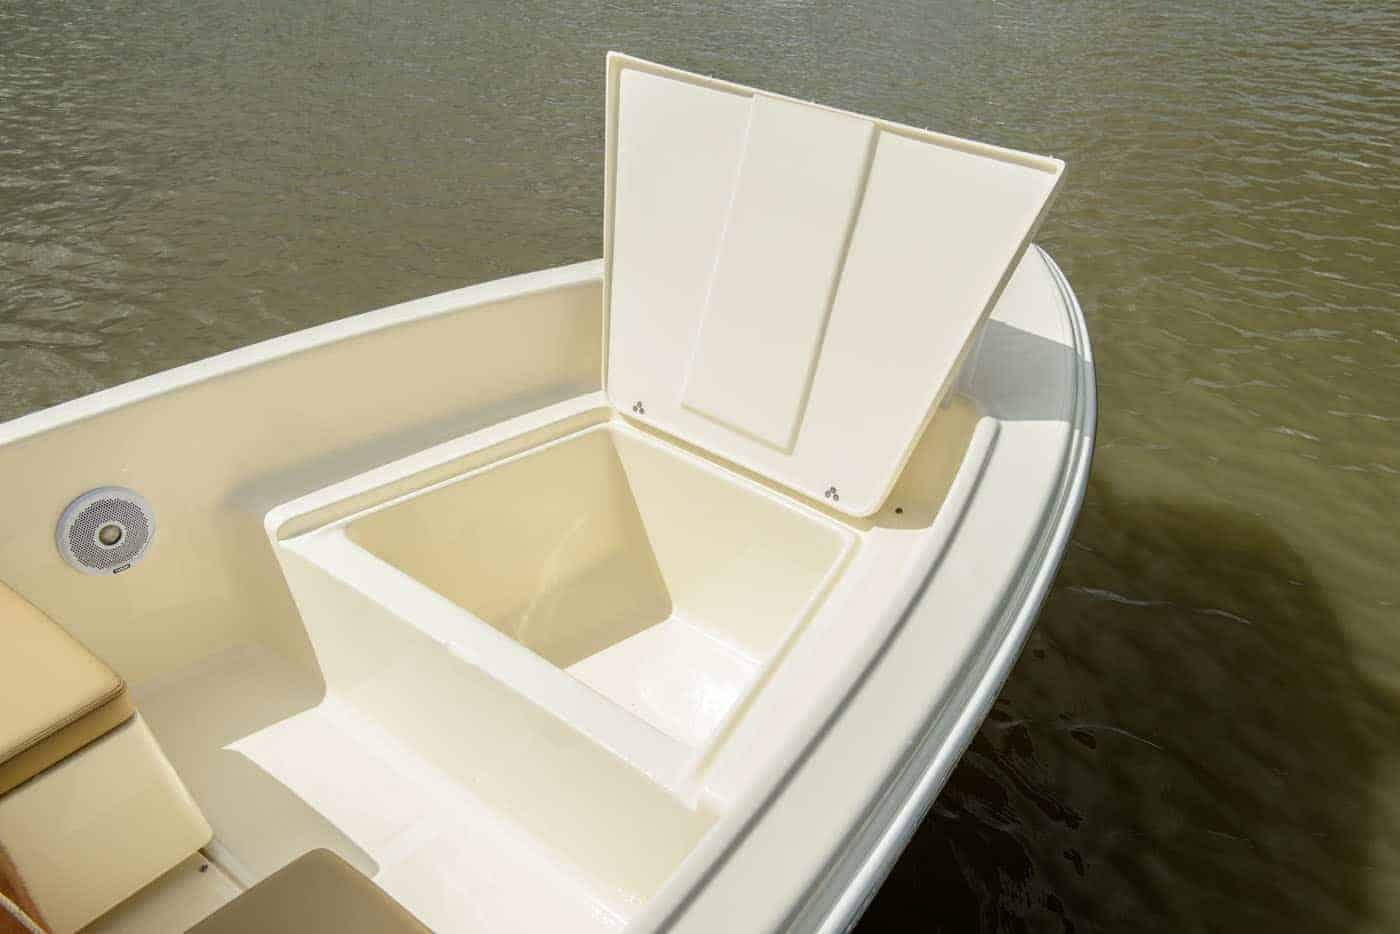 175SD bow storage compartment